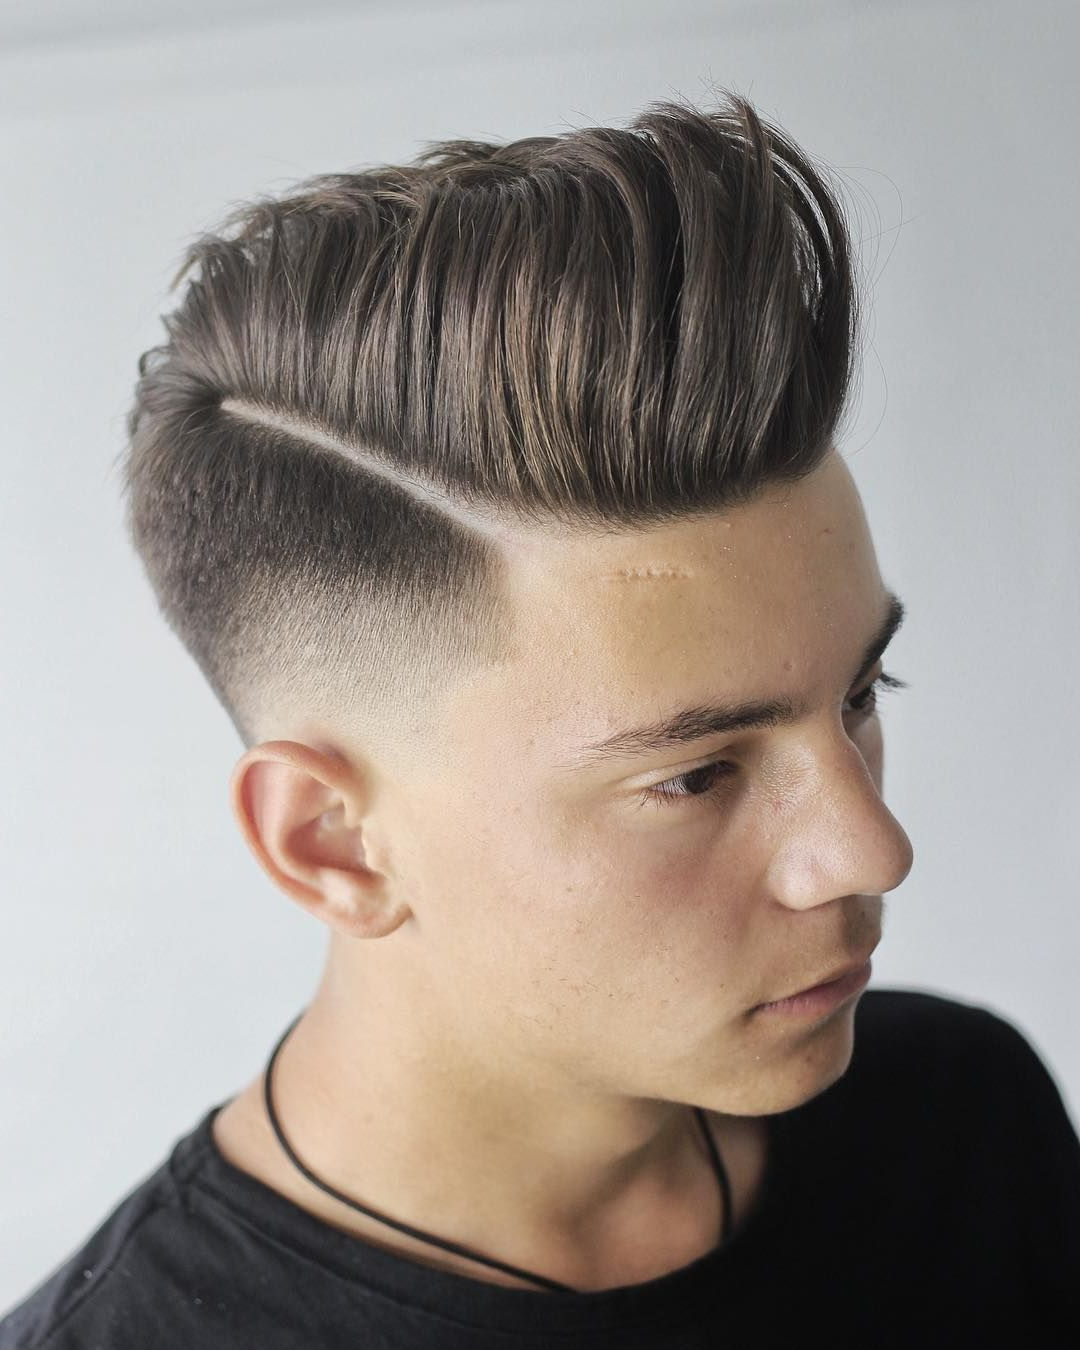 Pin On Hair Cuts For Well Known Mohawk Haircuts On Curls With Parting (View 8 of 20)